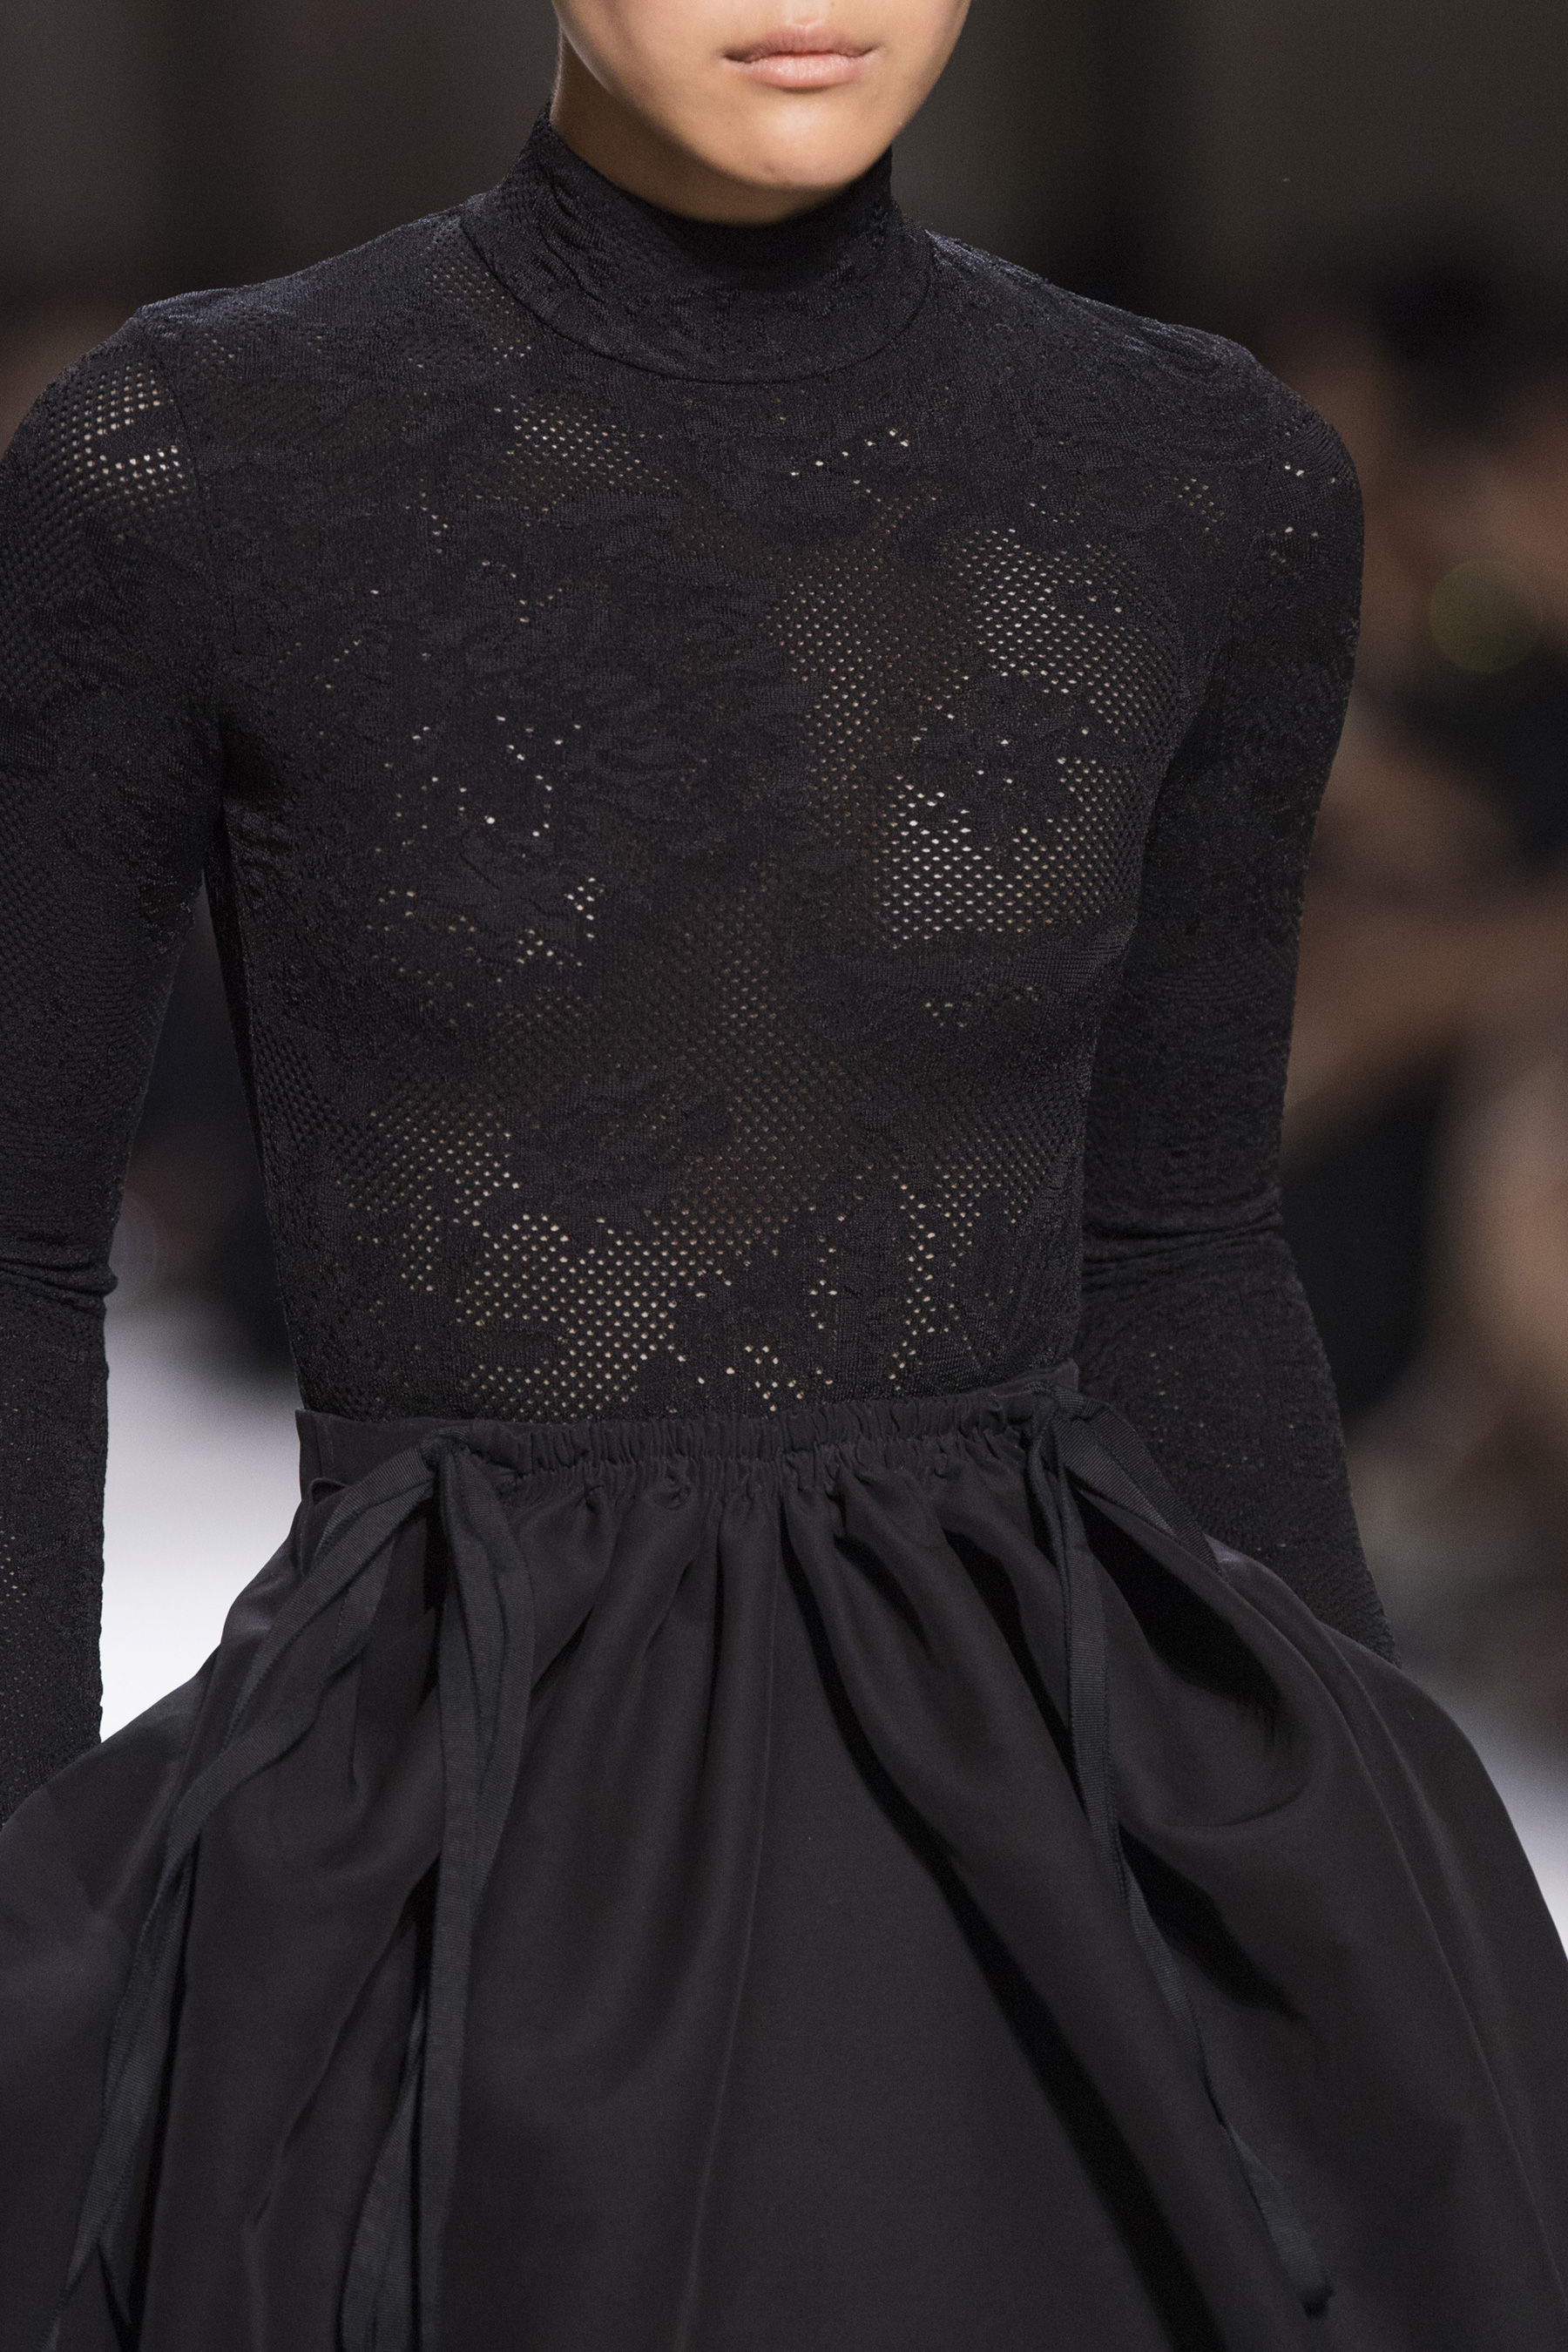 Givenchy Couture Fall 2019 Fashion Show Details